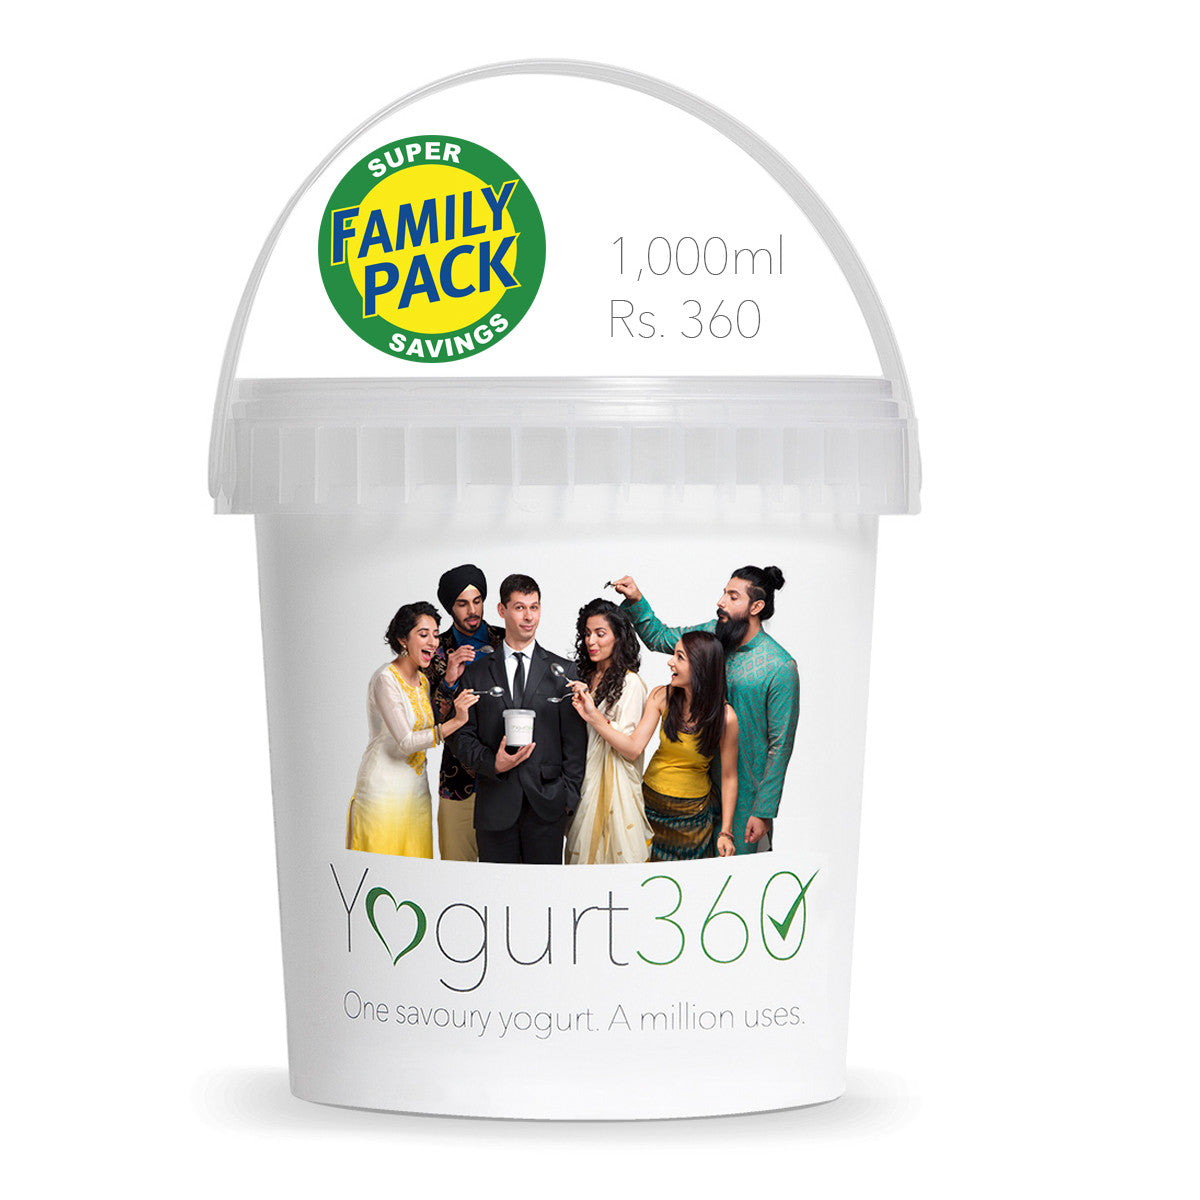 Beta Test Yogurt360